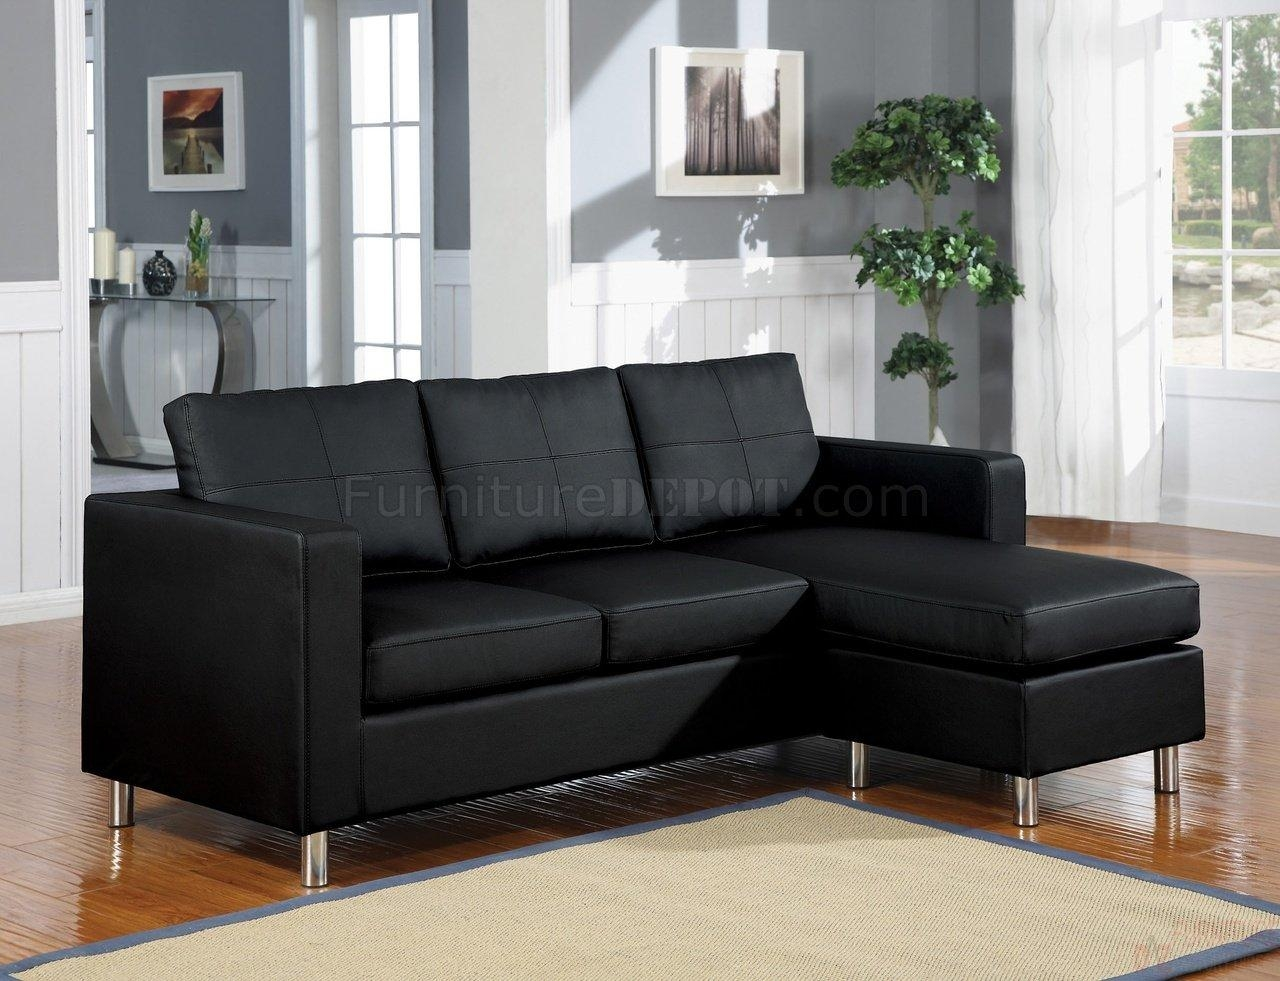 15065 Kemen Sectional Sofa In Black Vinylacme Regarding Black Vinyl Sofas (Image 1 of 20)